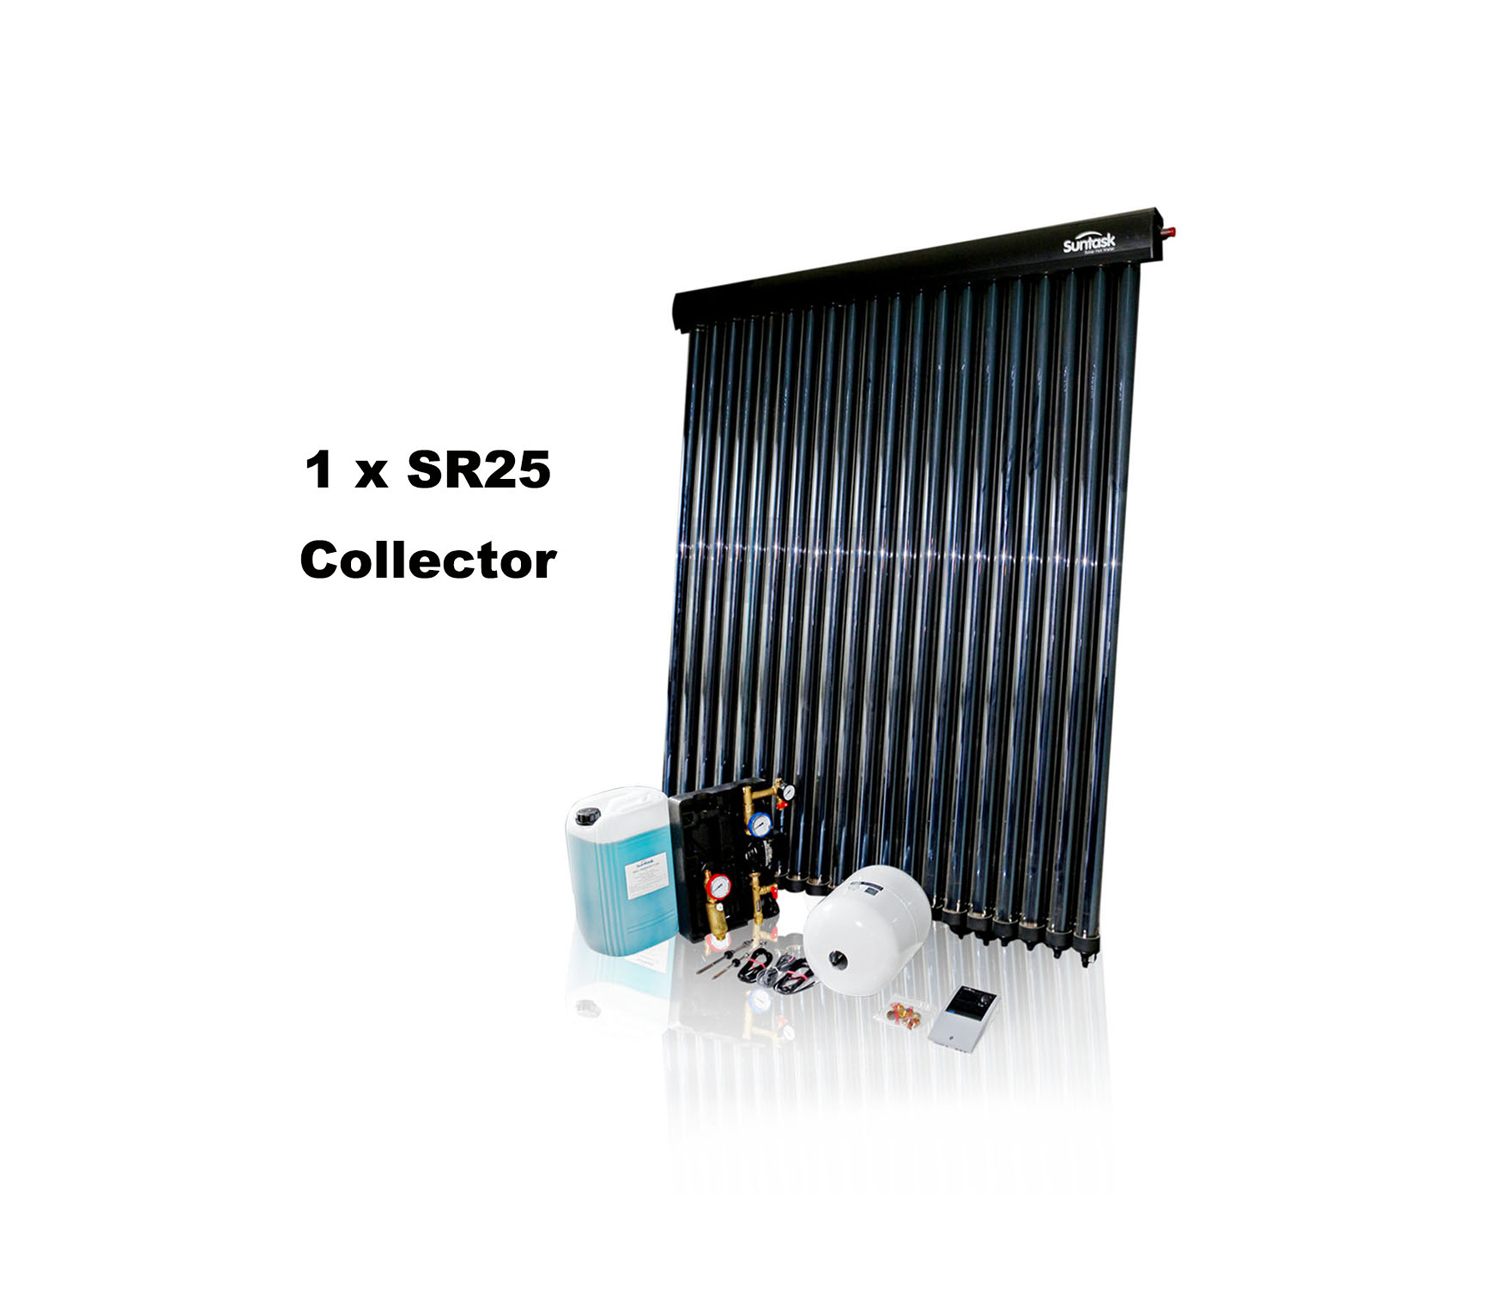 Suntask full Solar Thermal Kits excluding Cylinders 25 Tube System (1 x SR25 Collector)